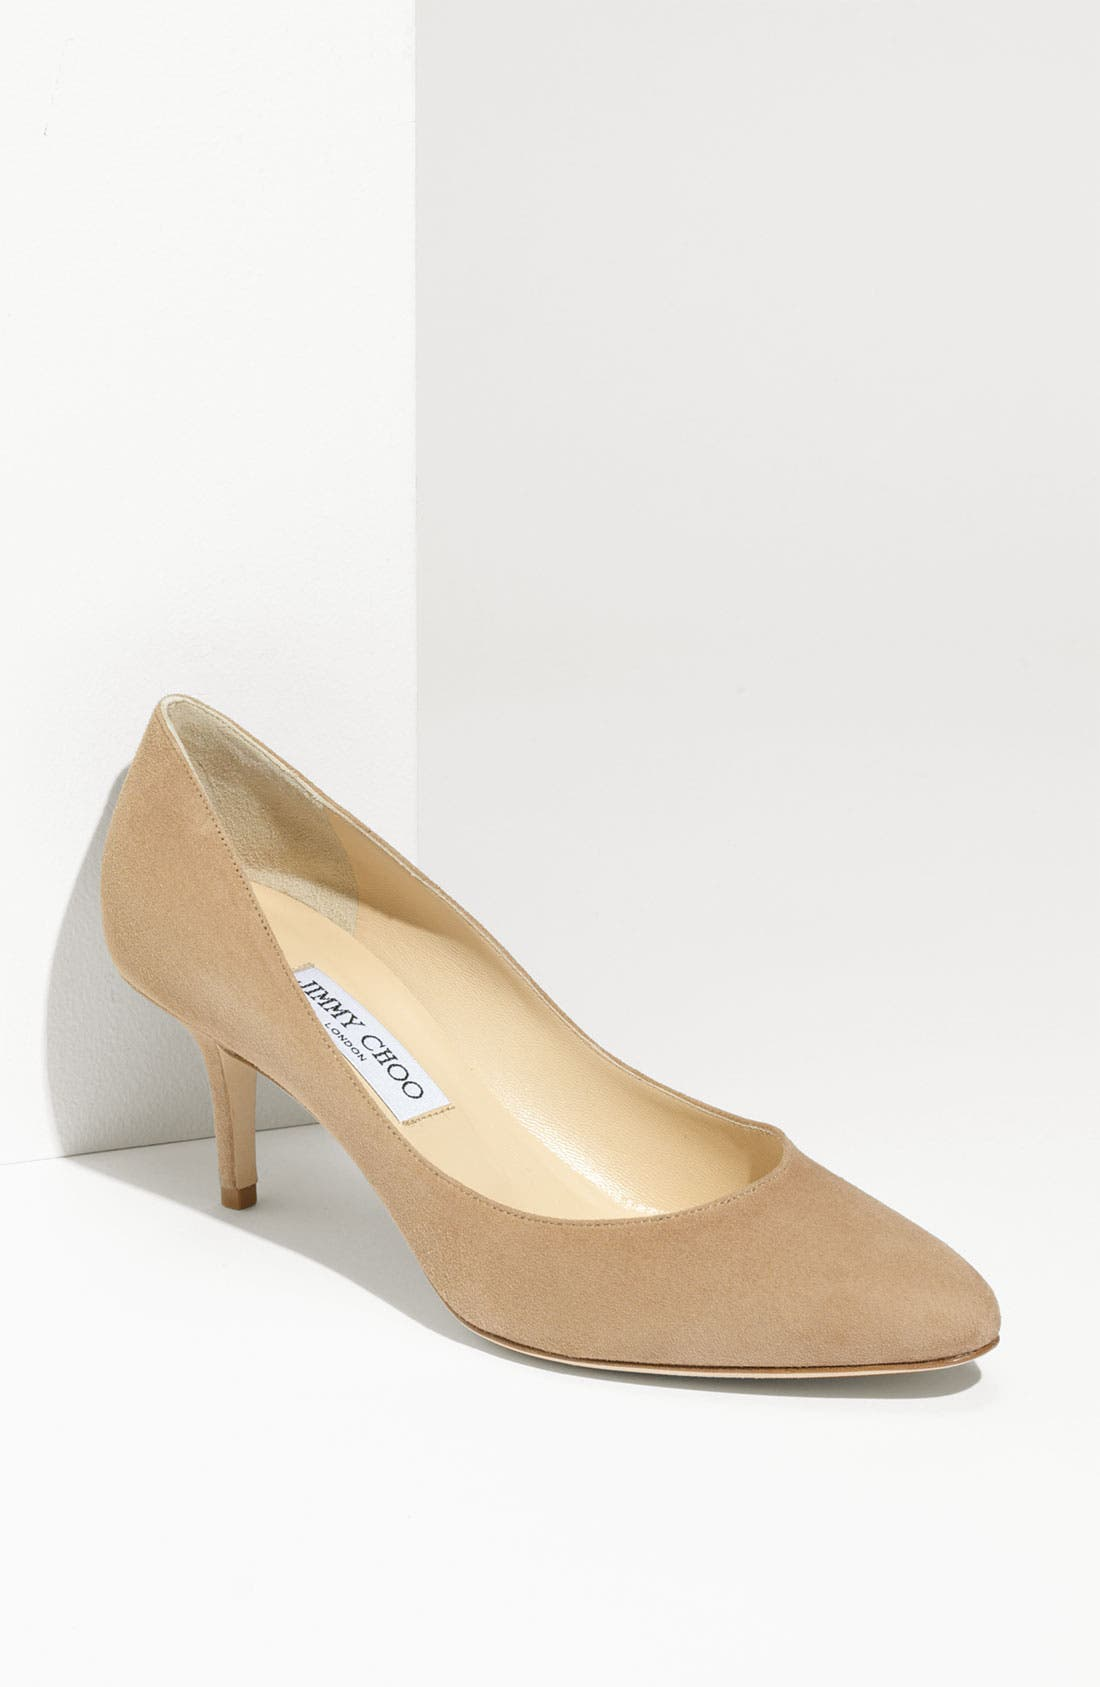 Main Image - Jimmy Choo 'Irena' Round Toe Pump